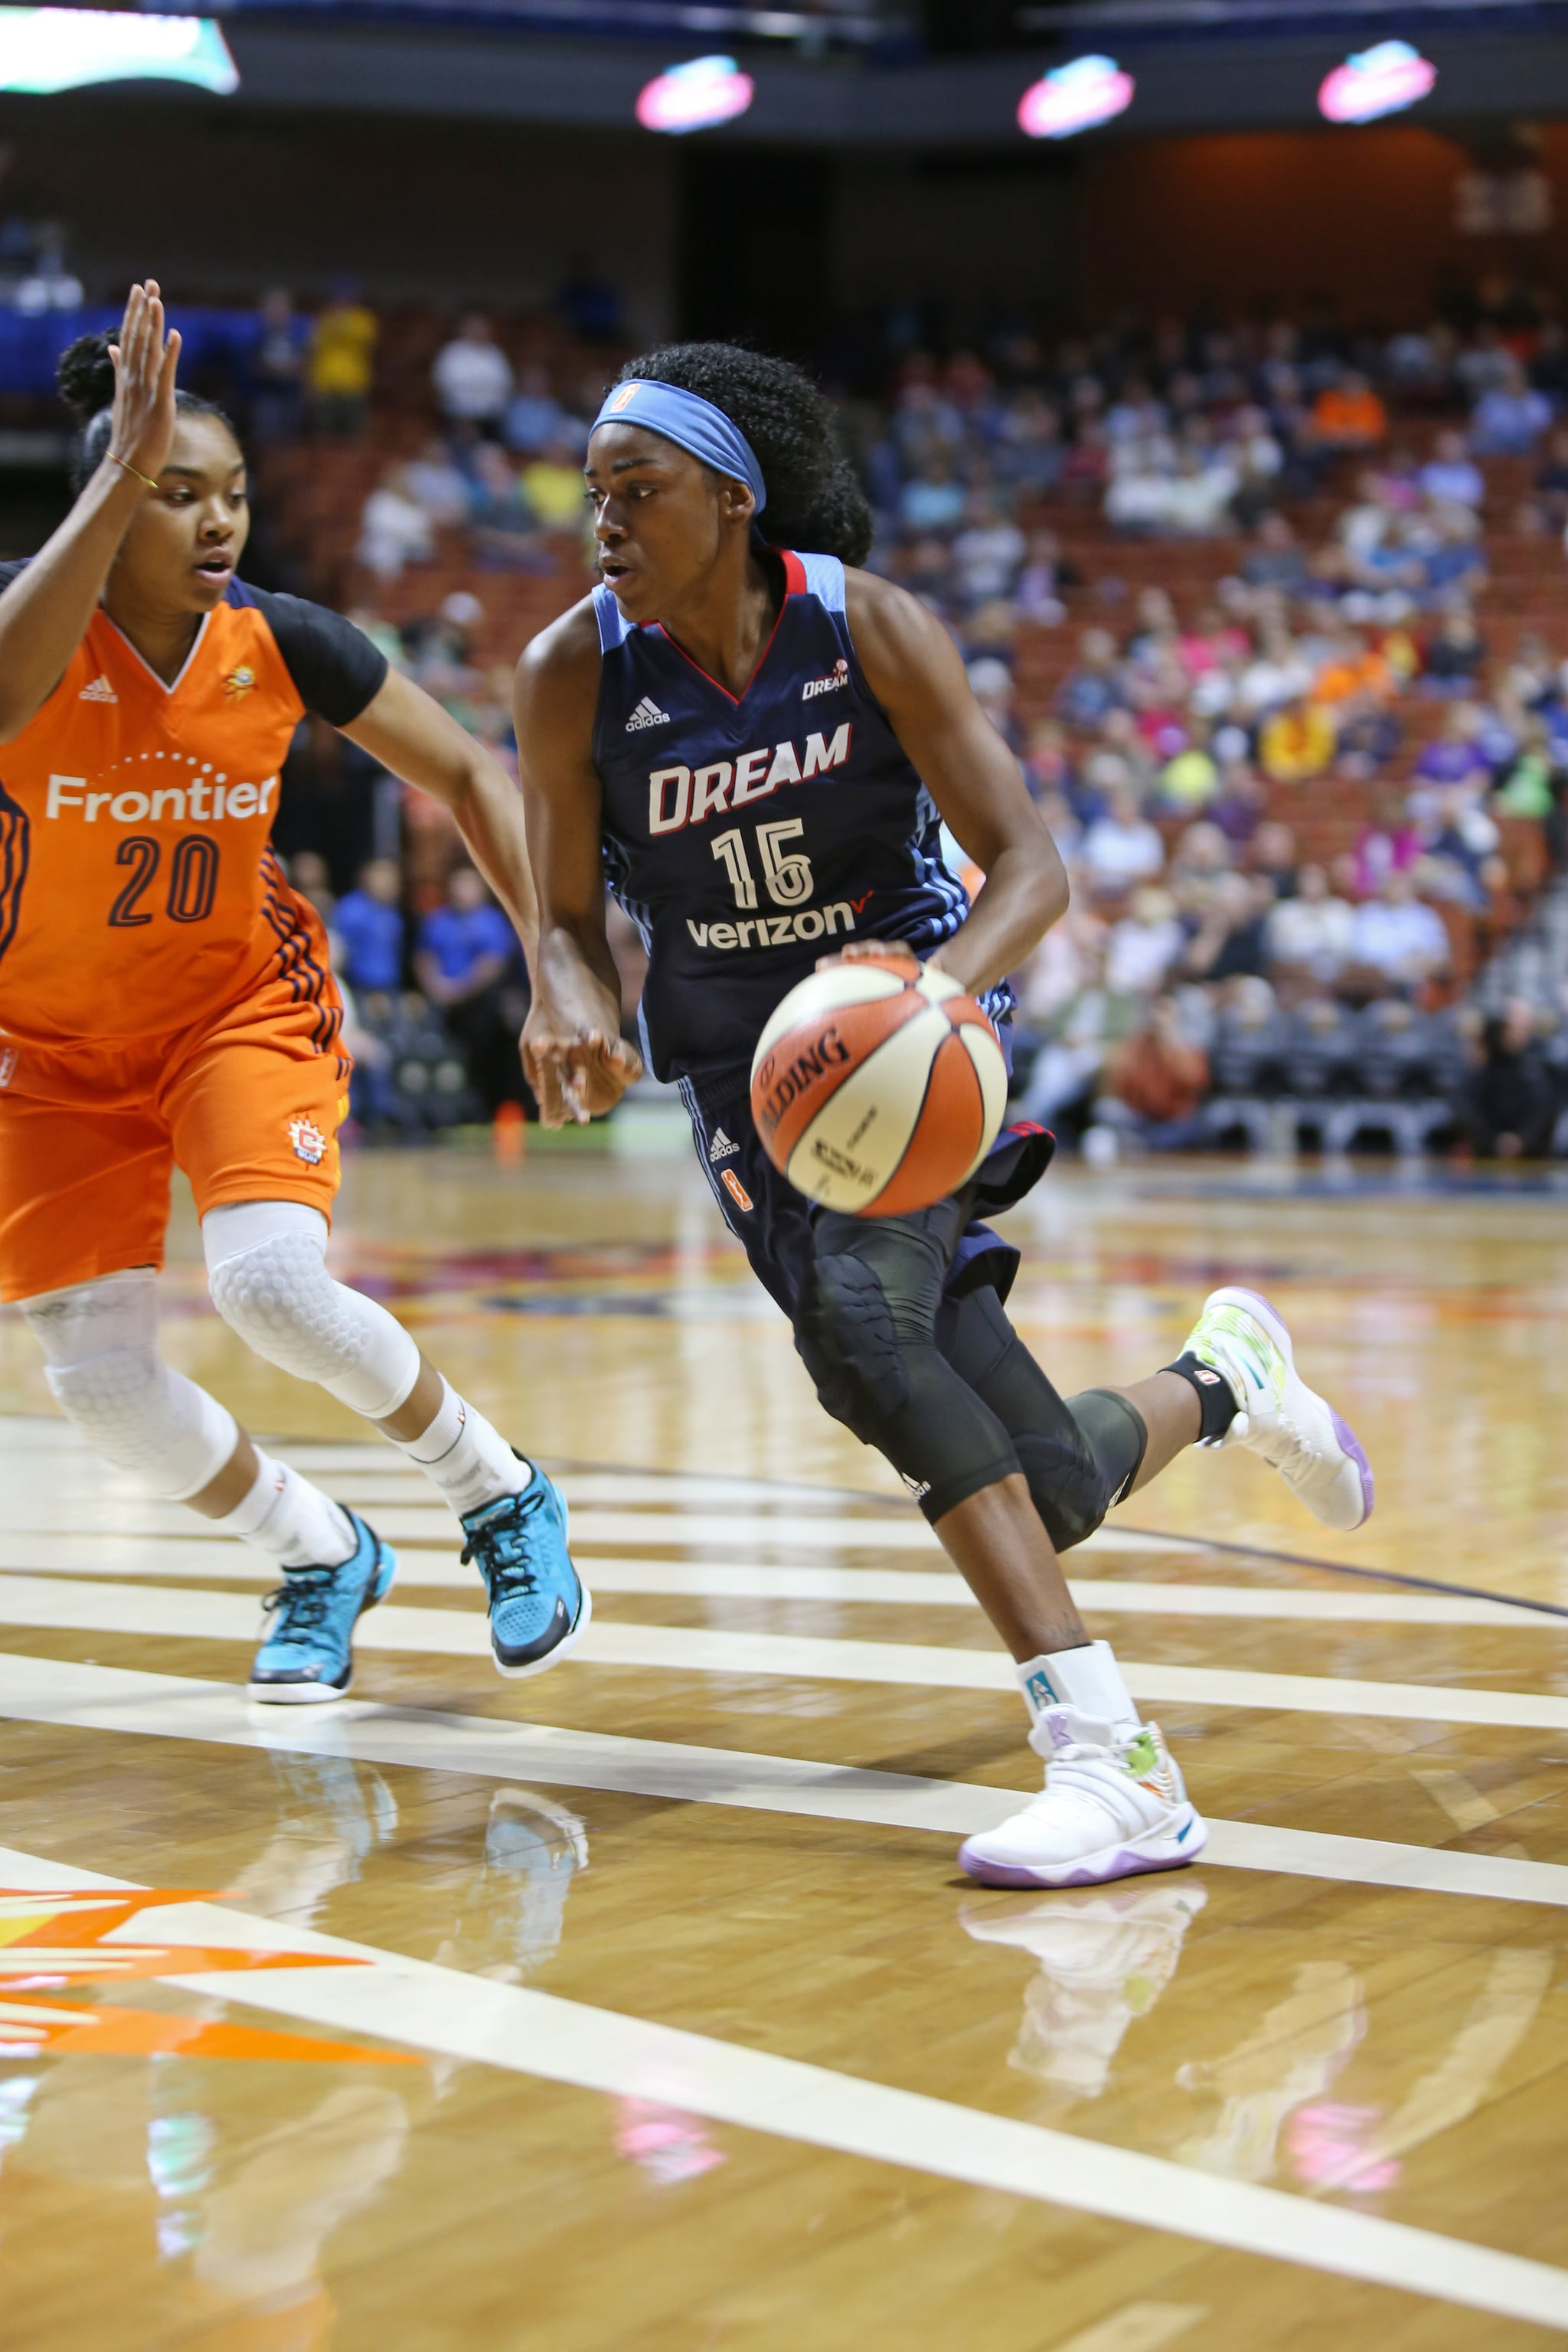 UNCASVILLE, CT - JUNE 3: Tiffany Hayes #15 of the Atlanta Dream drives to the basket against the Connecticut Sun on June 3, 2016 at Mohegan Sun Arena in Uncasville, CT. NOTE TO USER: User expressly acknowledges and agrees that, by downloading and or using this Photograph, user is consenting to the terms and conditions of the Getty Images License Agreement. Mandatory Copyright Notice: Copyright 2016 NBAE (Photo by Chris Marion/NBAE via Getty Images)